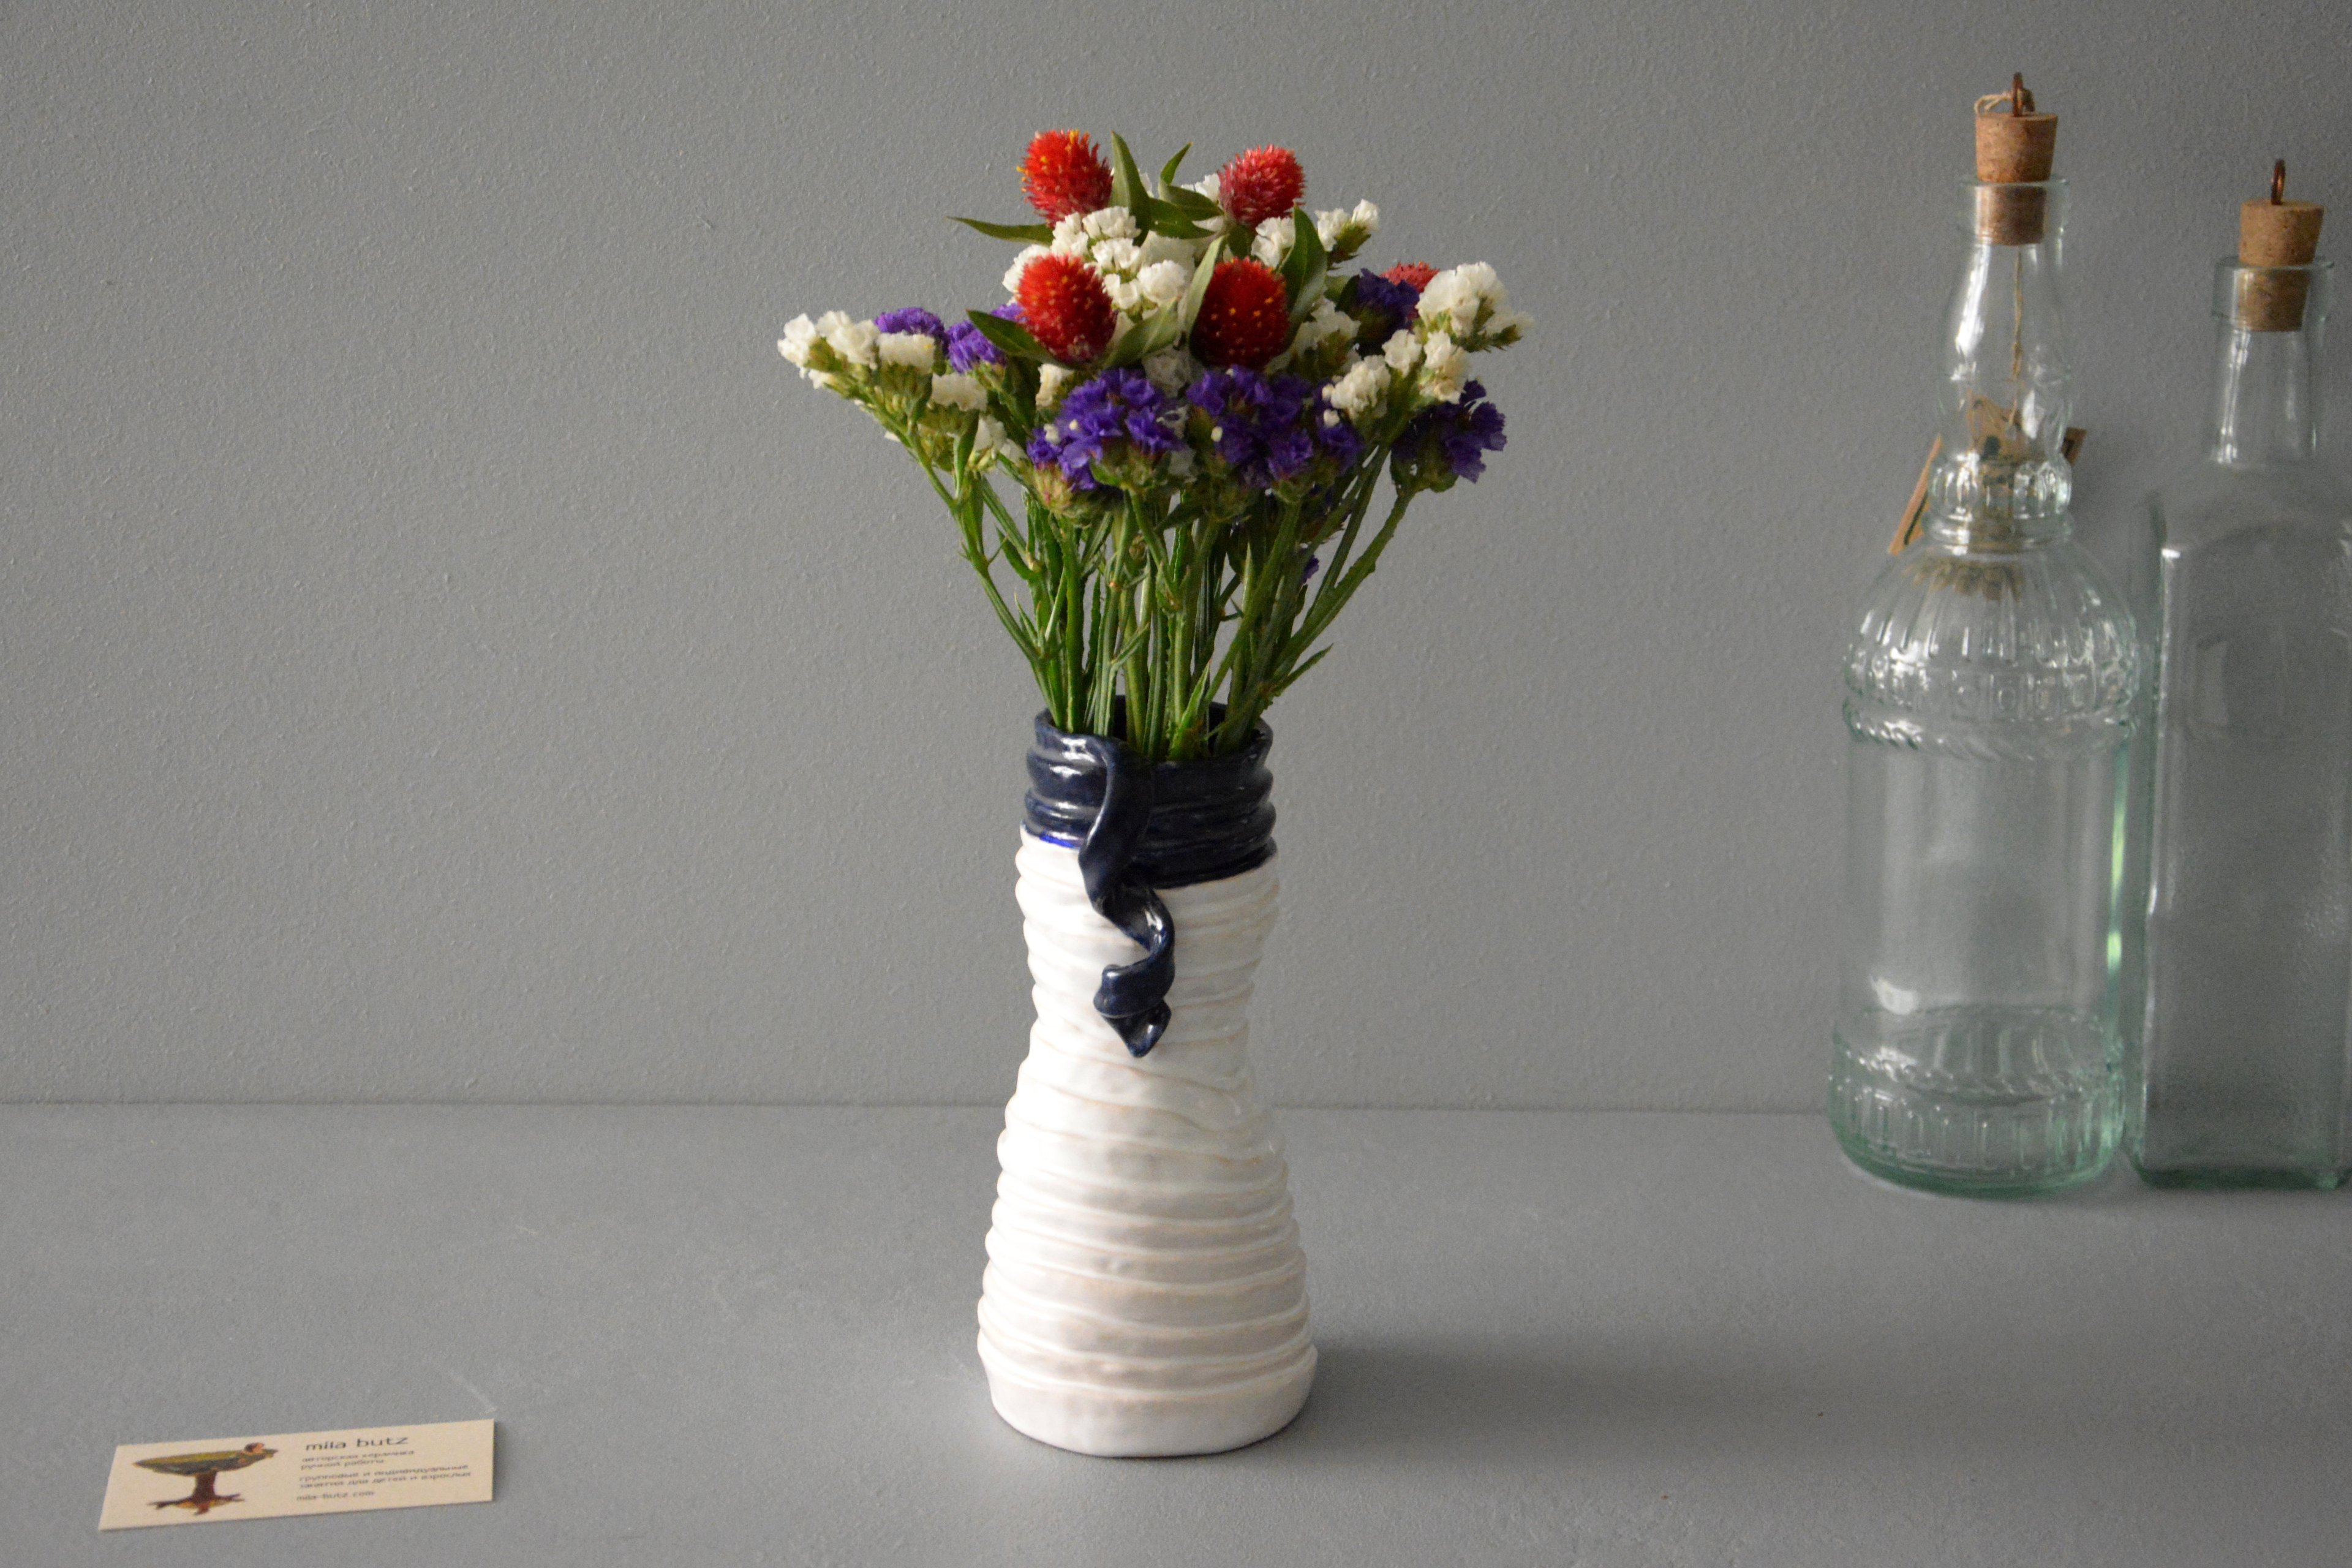 Decorative vase «Tourniquets and cobalt blue webbing», height - 18 cm, color - white. Photo 1232.